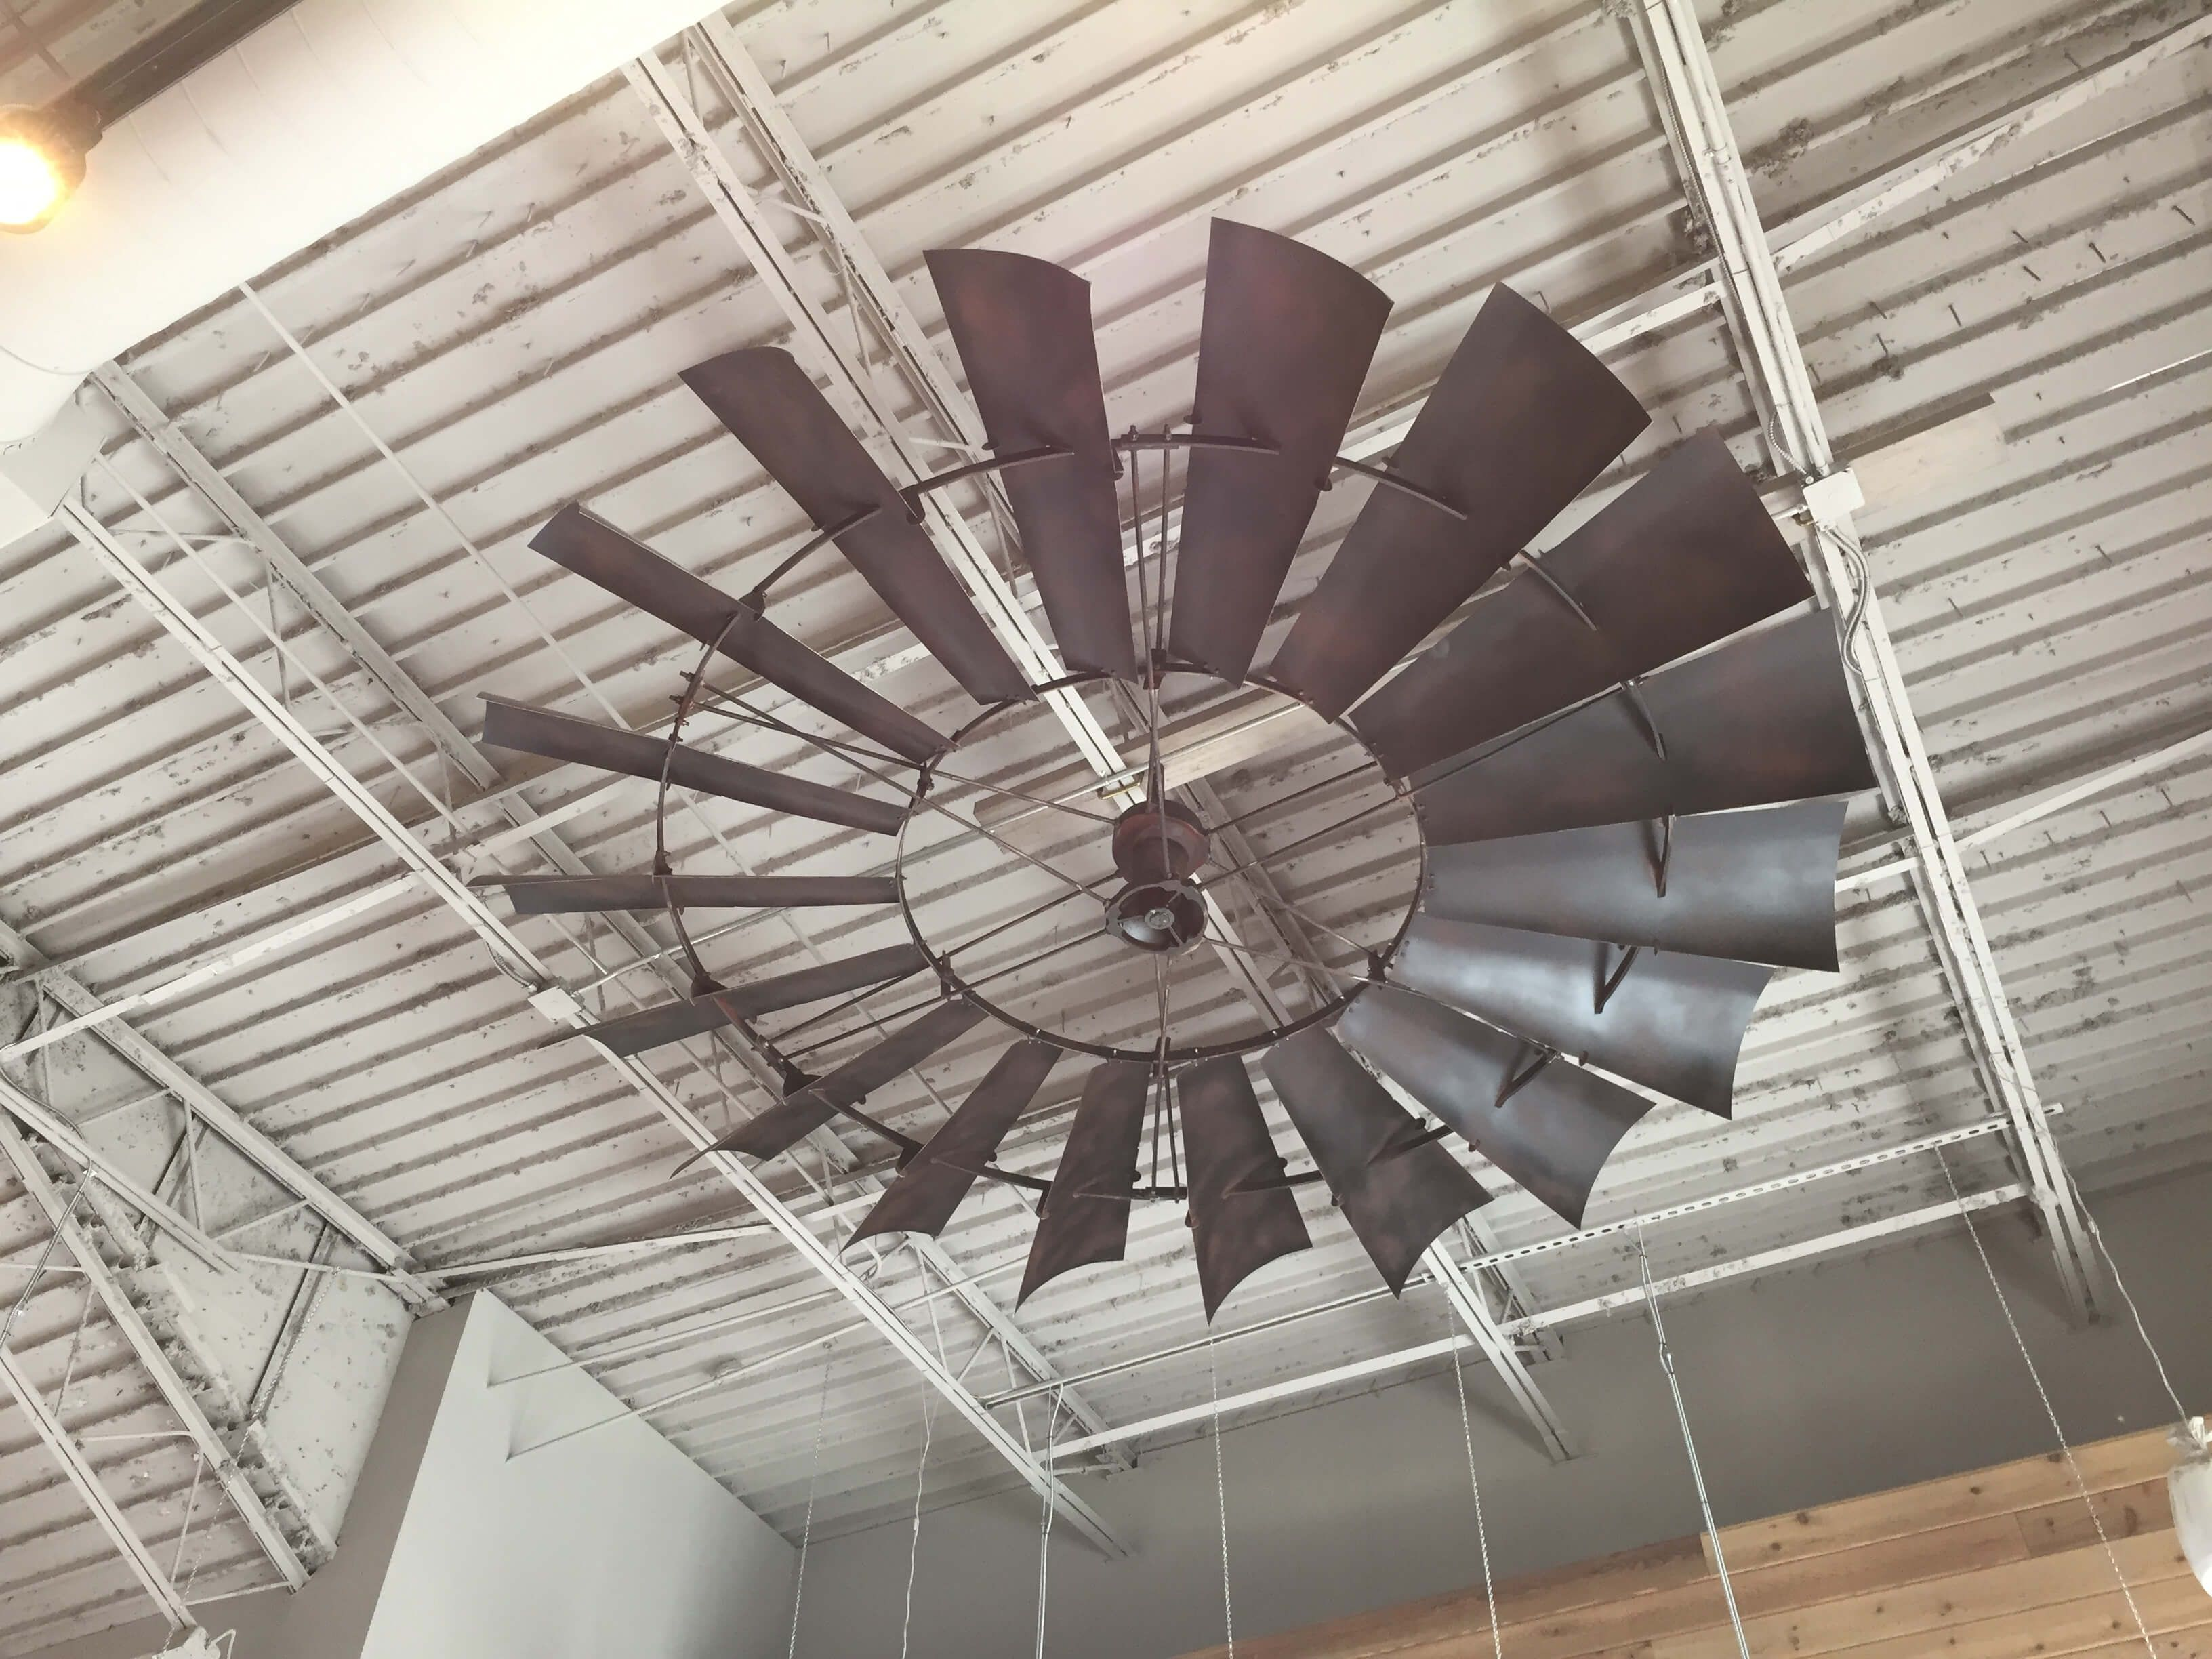 10 Aermotor Windmill Wheel Fan Non Turning Painted A